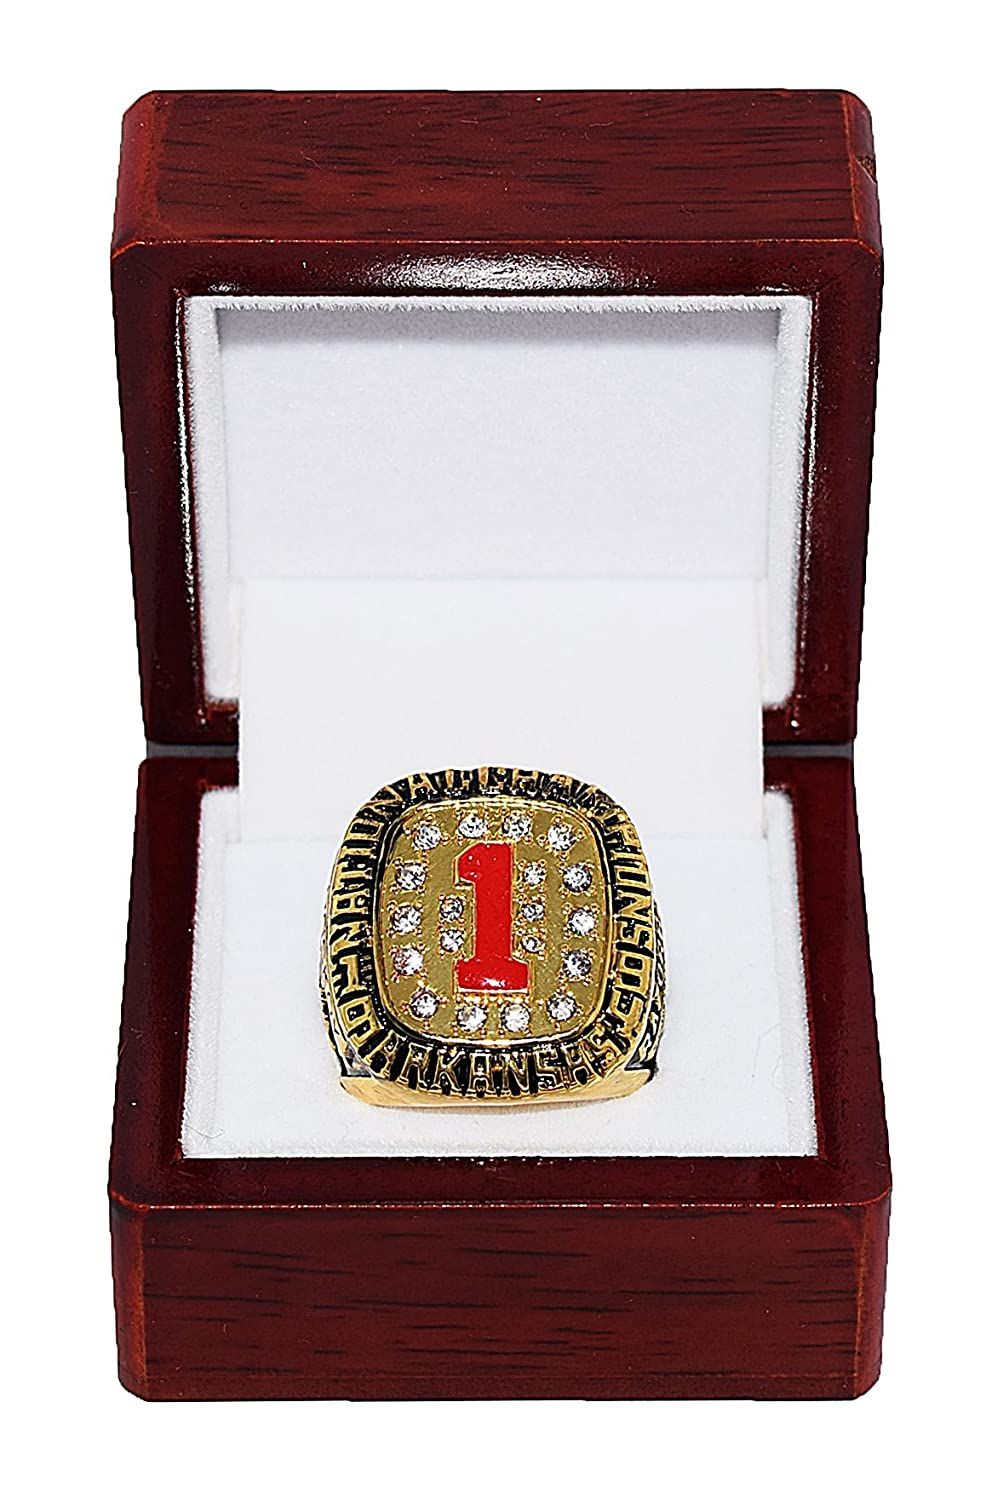 ARKANSAS RAZORBACKS (John Engskov) 1994 NCAA NATIONAL SEC CHAMPIONS (First Title) Vintage Rare & Collectible High-Quality Replica NCAA Basketball Gold Championship Ring with Cherrywood Display Box Trackside Autographs